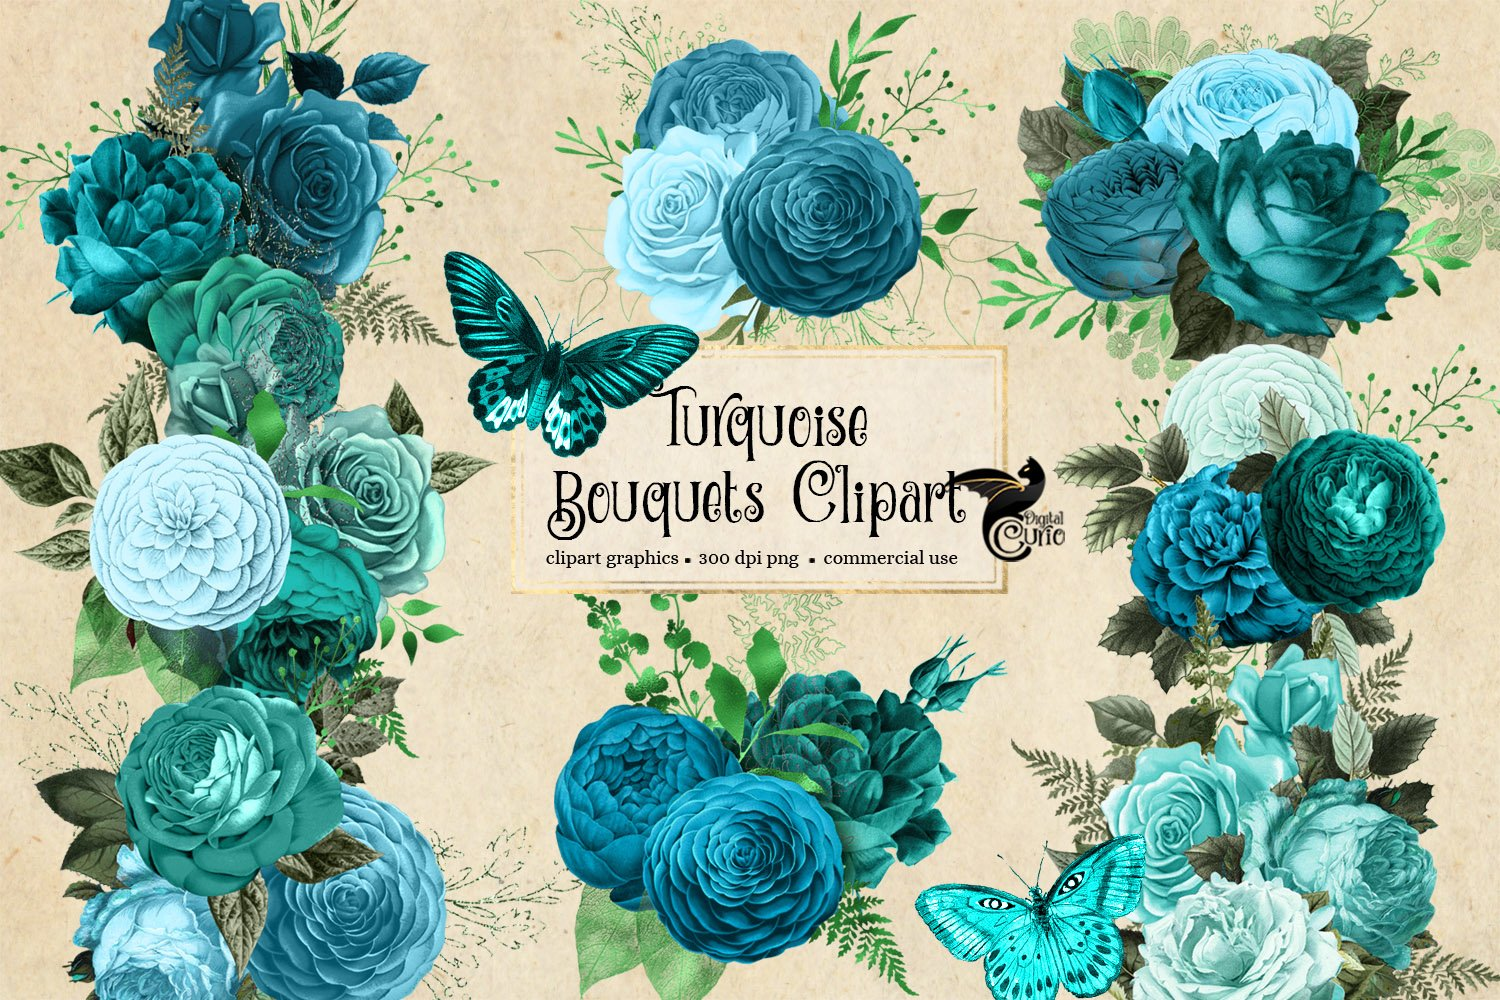 Turquoise Bouquets Clipart example image 4